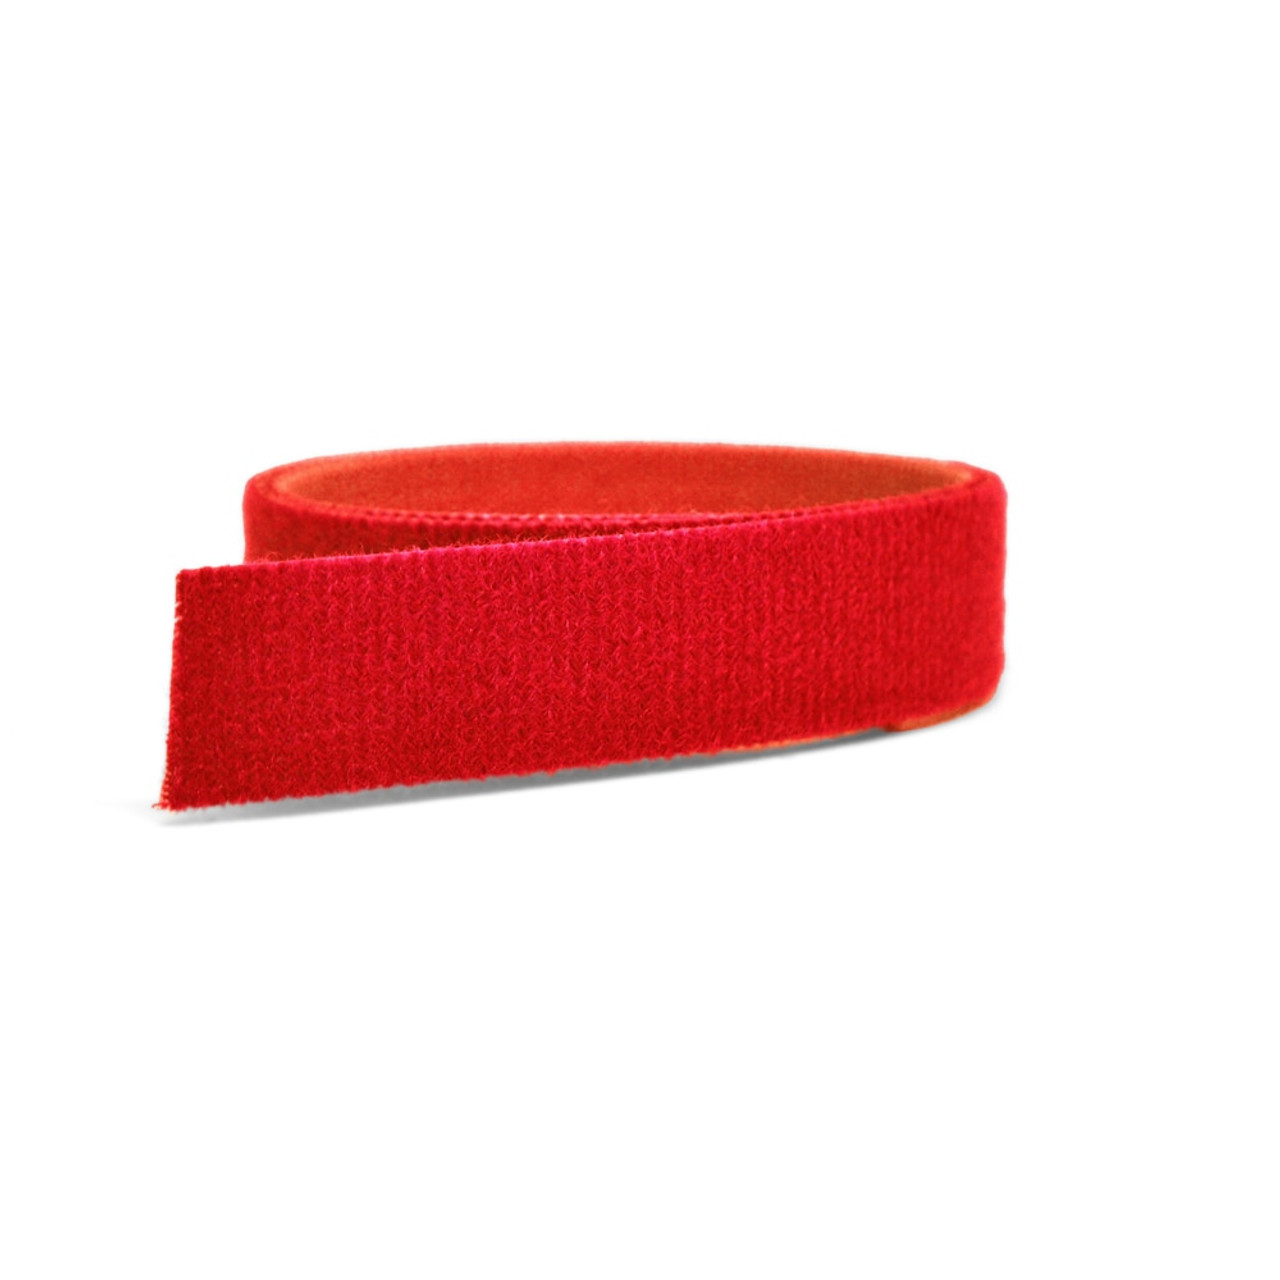 VELCRO® ONE-WRAP® Tape - Red / Velcro Straps - Bundling Straps - Velcro Tie - Velcro Strap